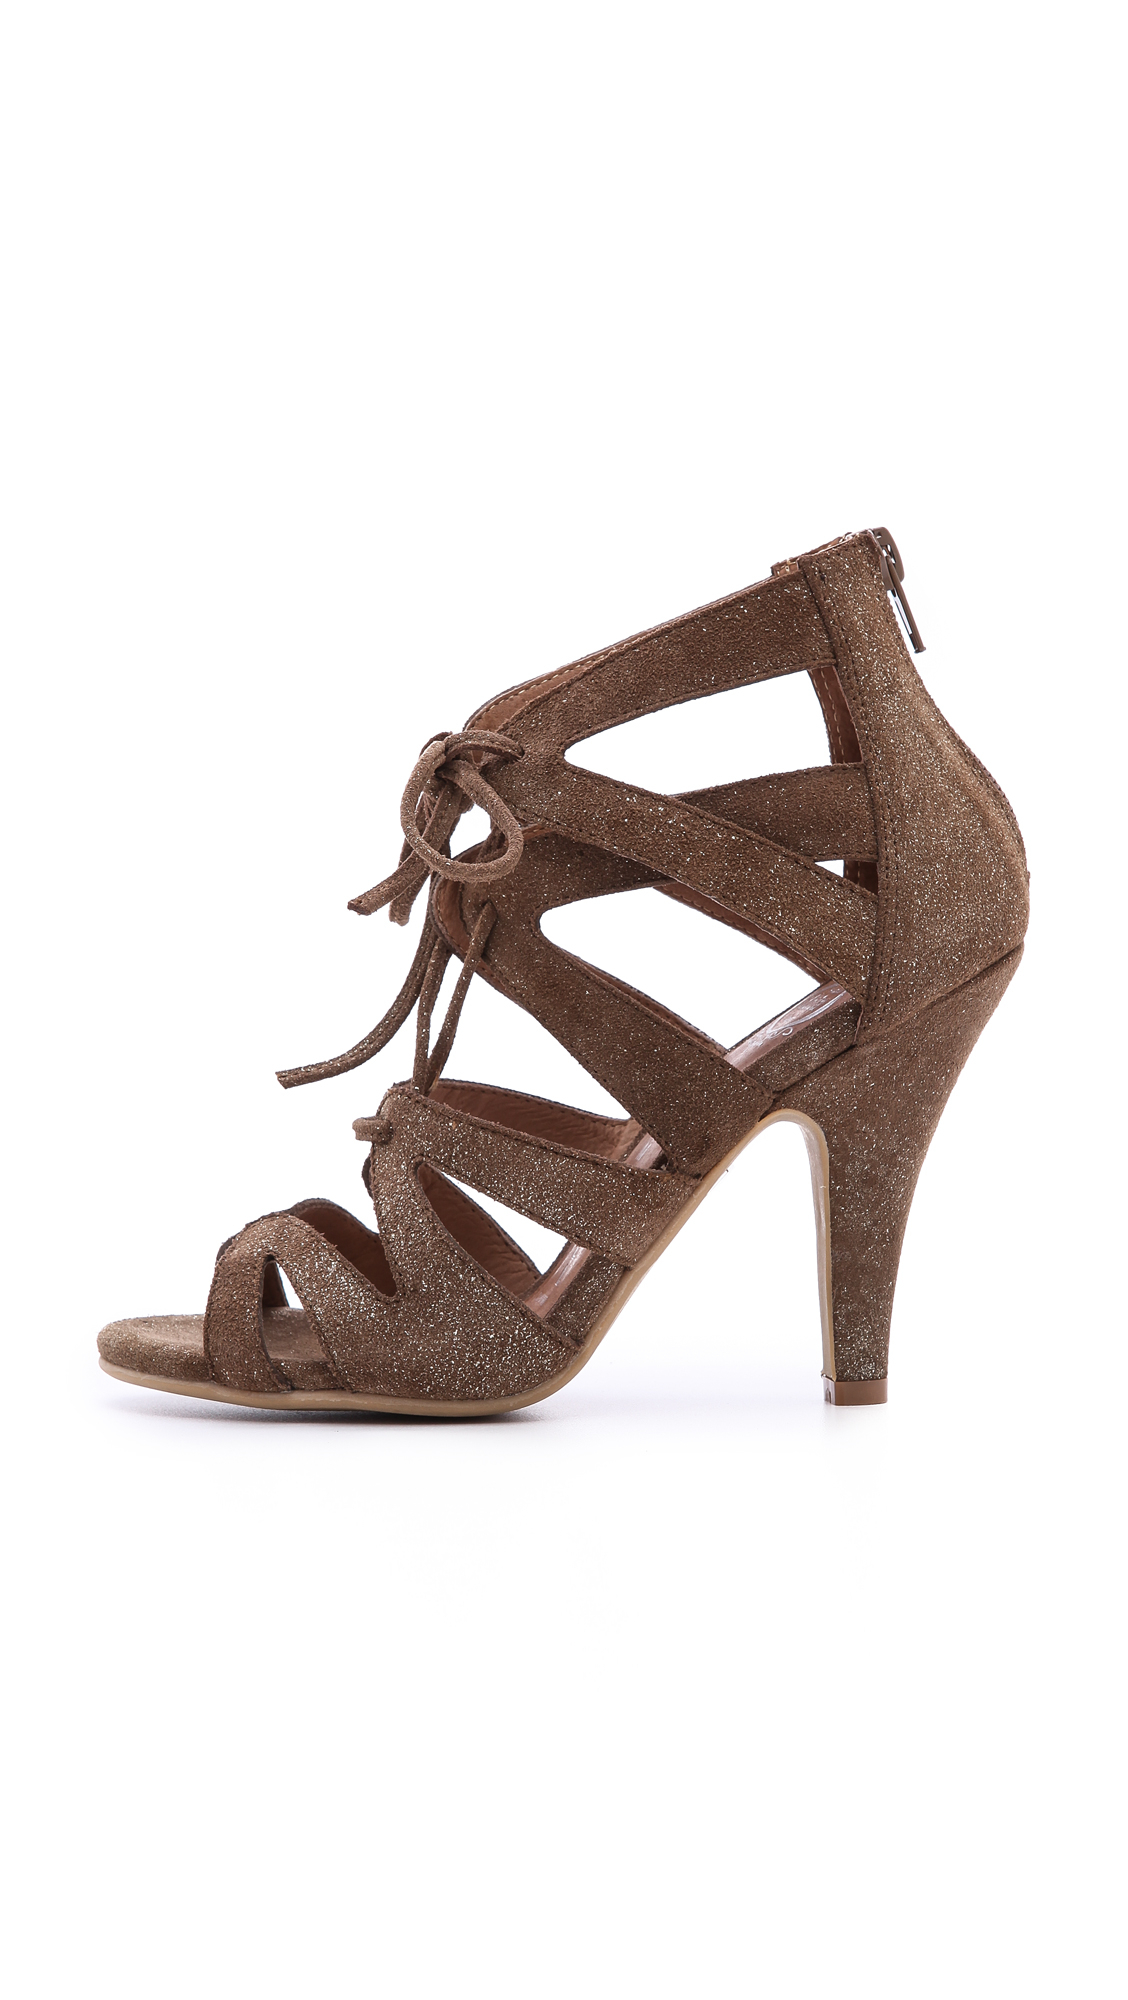 Lyst Jeffrey Campbell Laramie Lace Up Sandals Brown In Brown